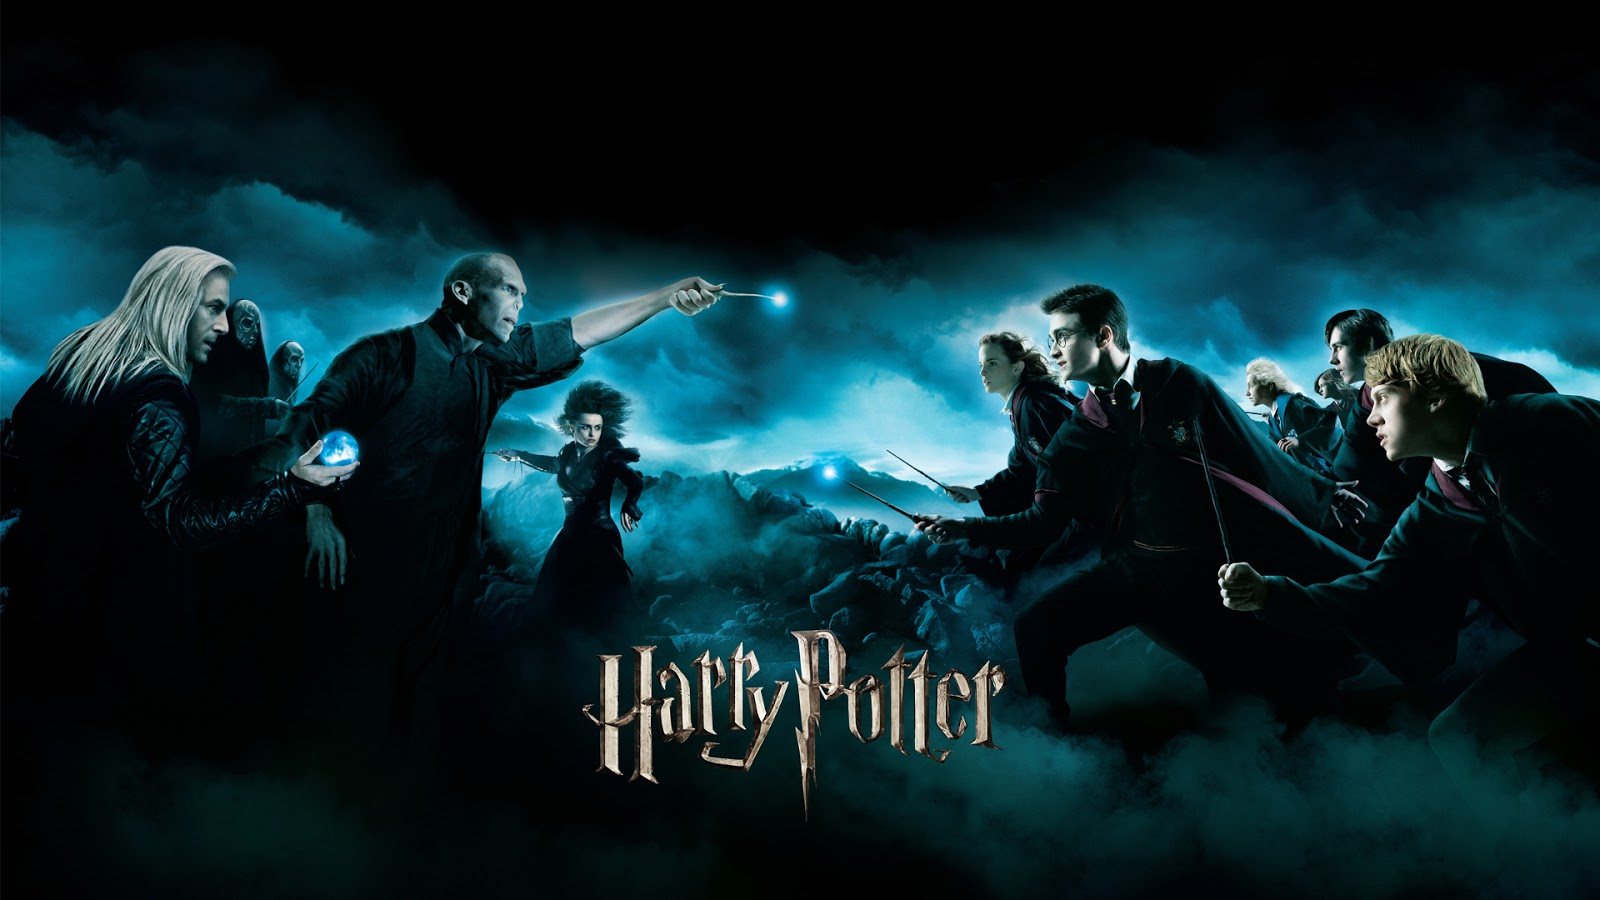 harry-potter-wallpapers-hd.jpg